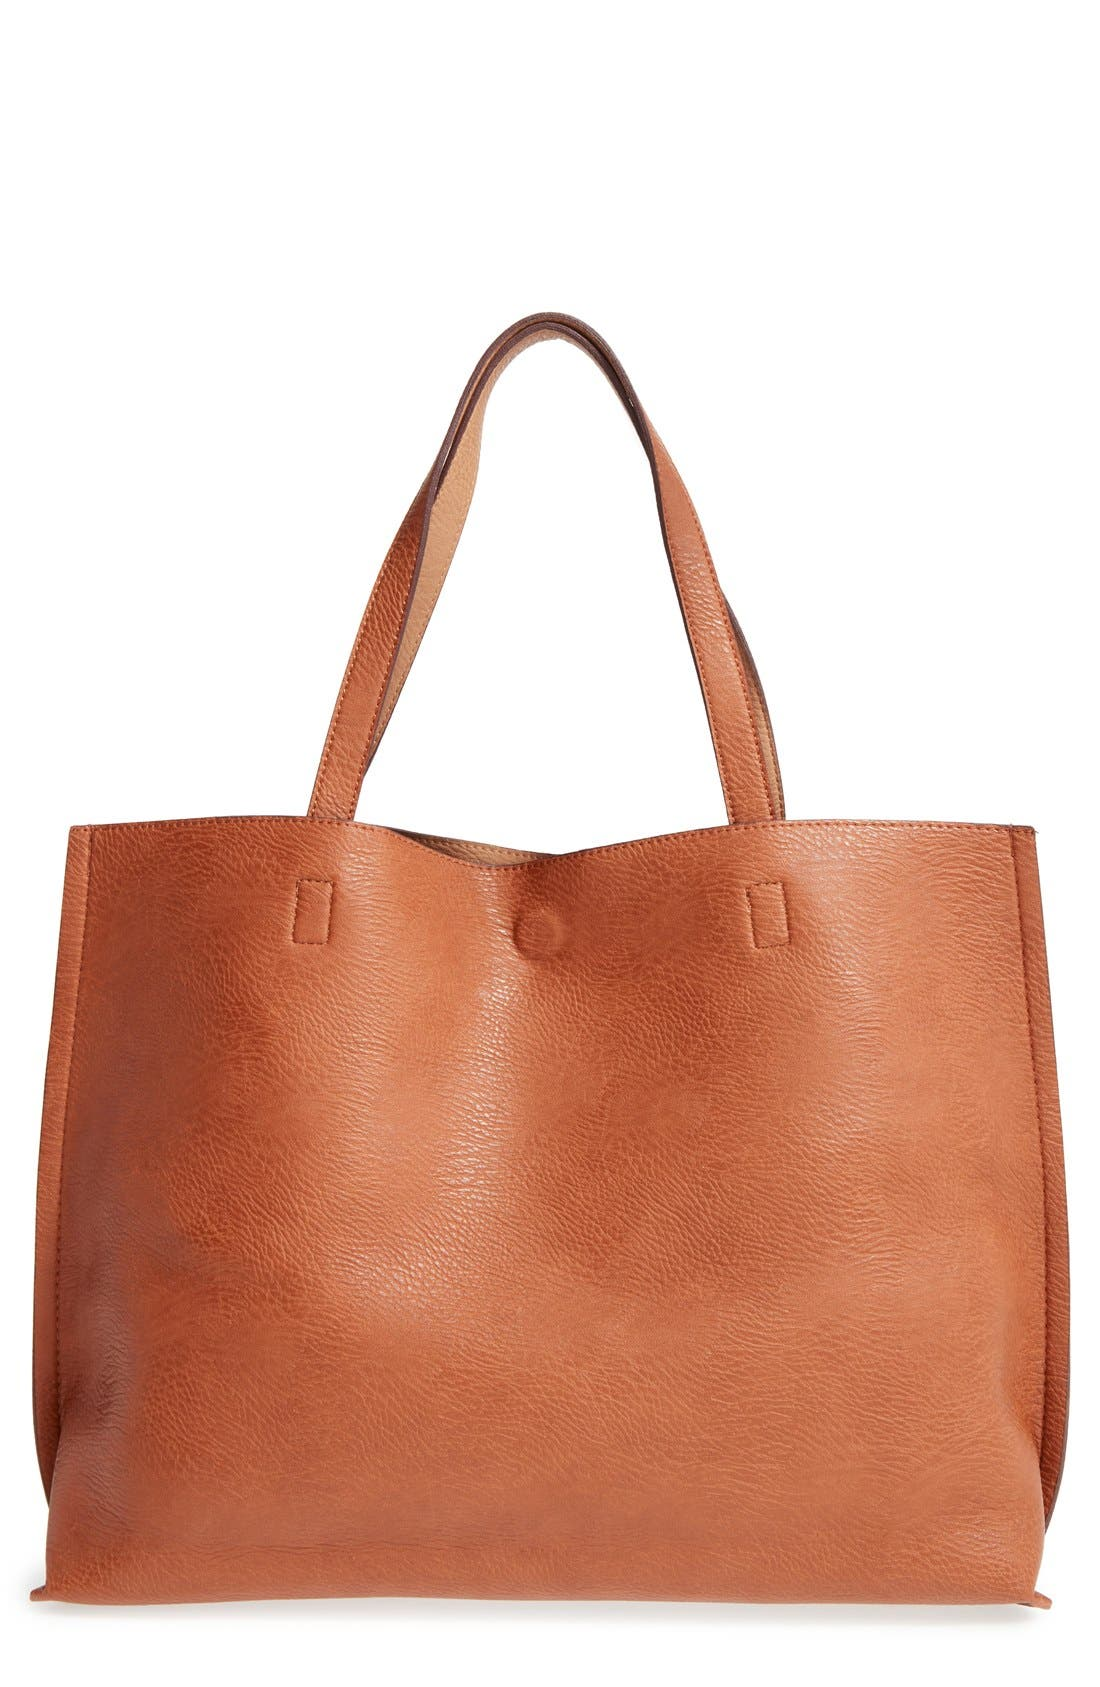 STREET LEVEL,                             Reversible Faux Leather Tote & Wristlet,                             Alternate thumbnail 3, color,                             COGNAC